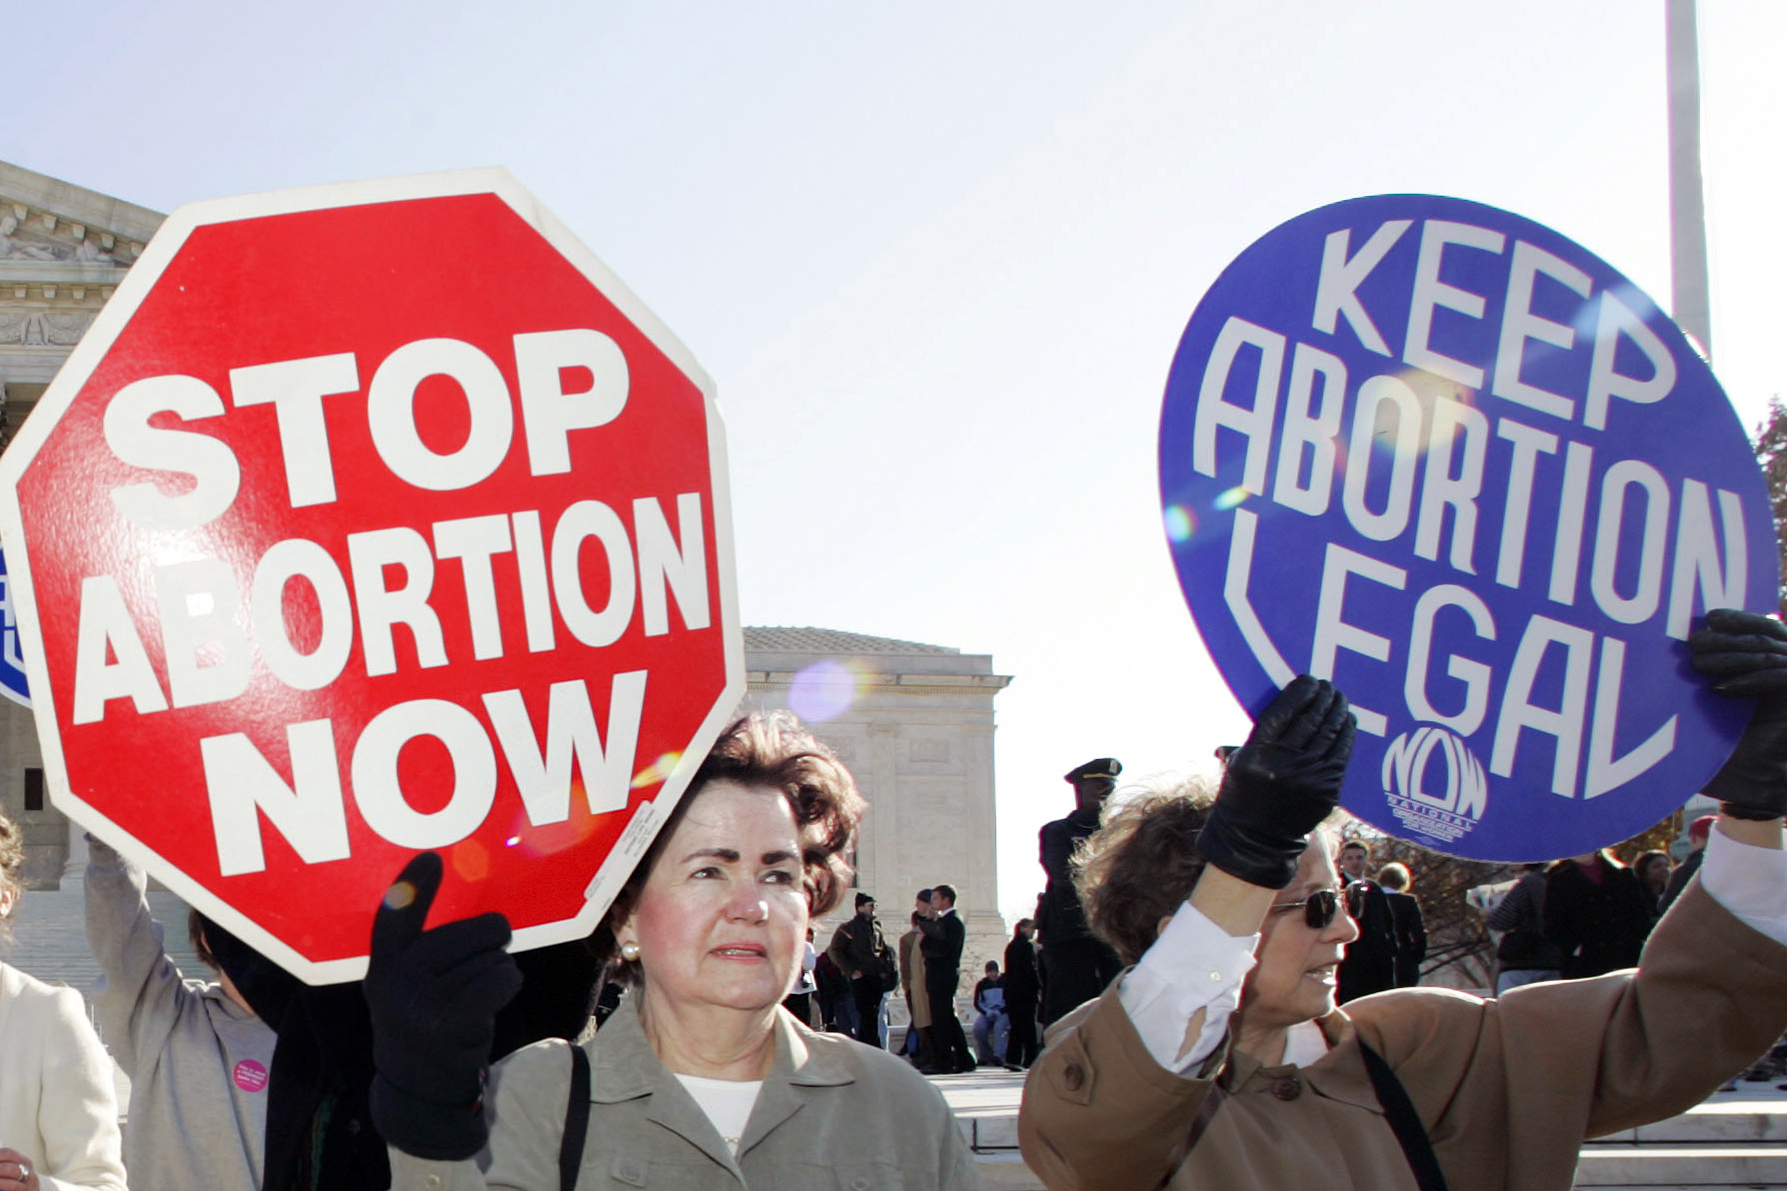 In this Nov. 30, 2005 file photo, an anti-abortion supporter stands next to a pro-choice demonstrator outside the U.S. Supreme Court in Washington. The new poll from The Associated Press-NORC Center for Public Affairs Research finds 61% of Americans say abortion should be legal in most or all circumstances in the first trimester of a pregnancy. However, 65% said abortion should usually be illegal in the second trimester, and 80% said that about the third trimester. (AP Photo/Manuel Balce Ceneta)